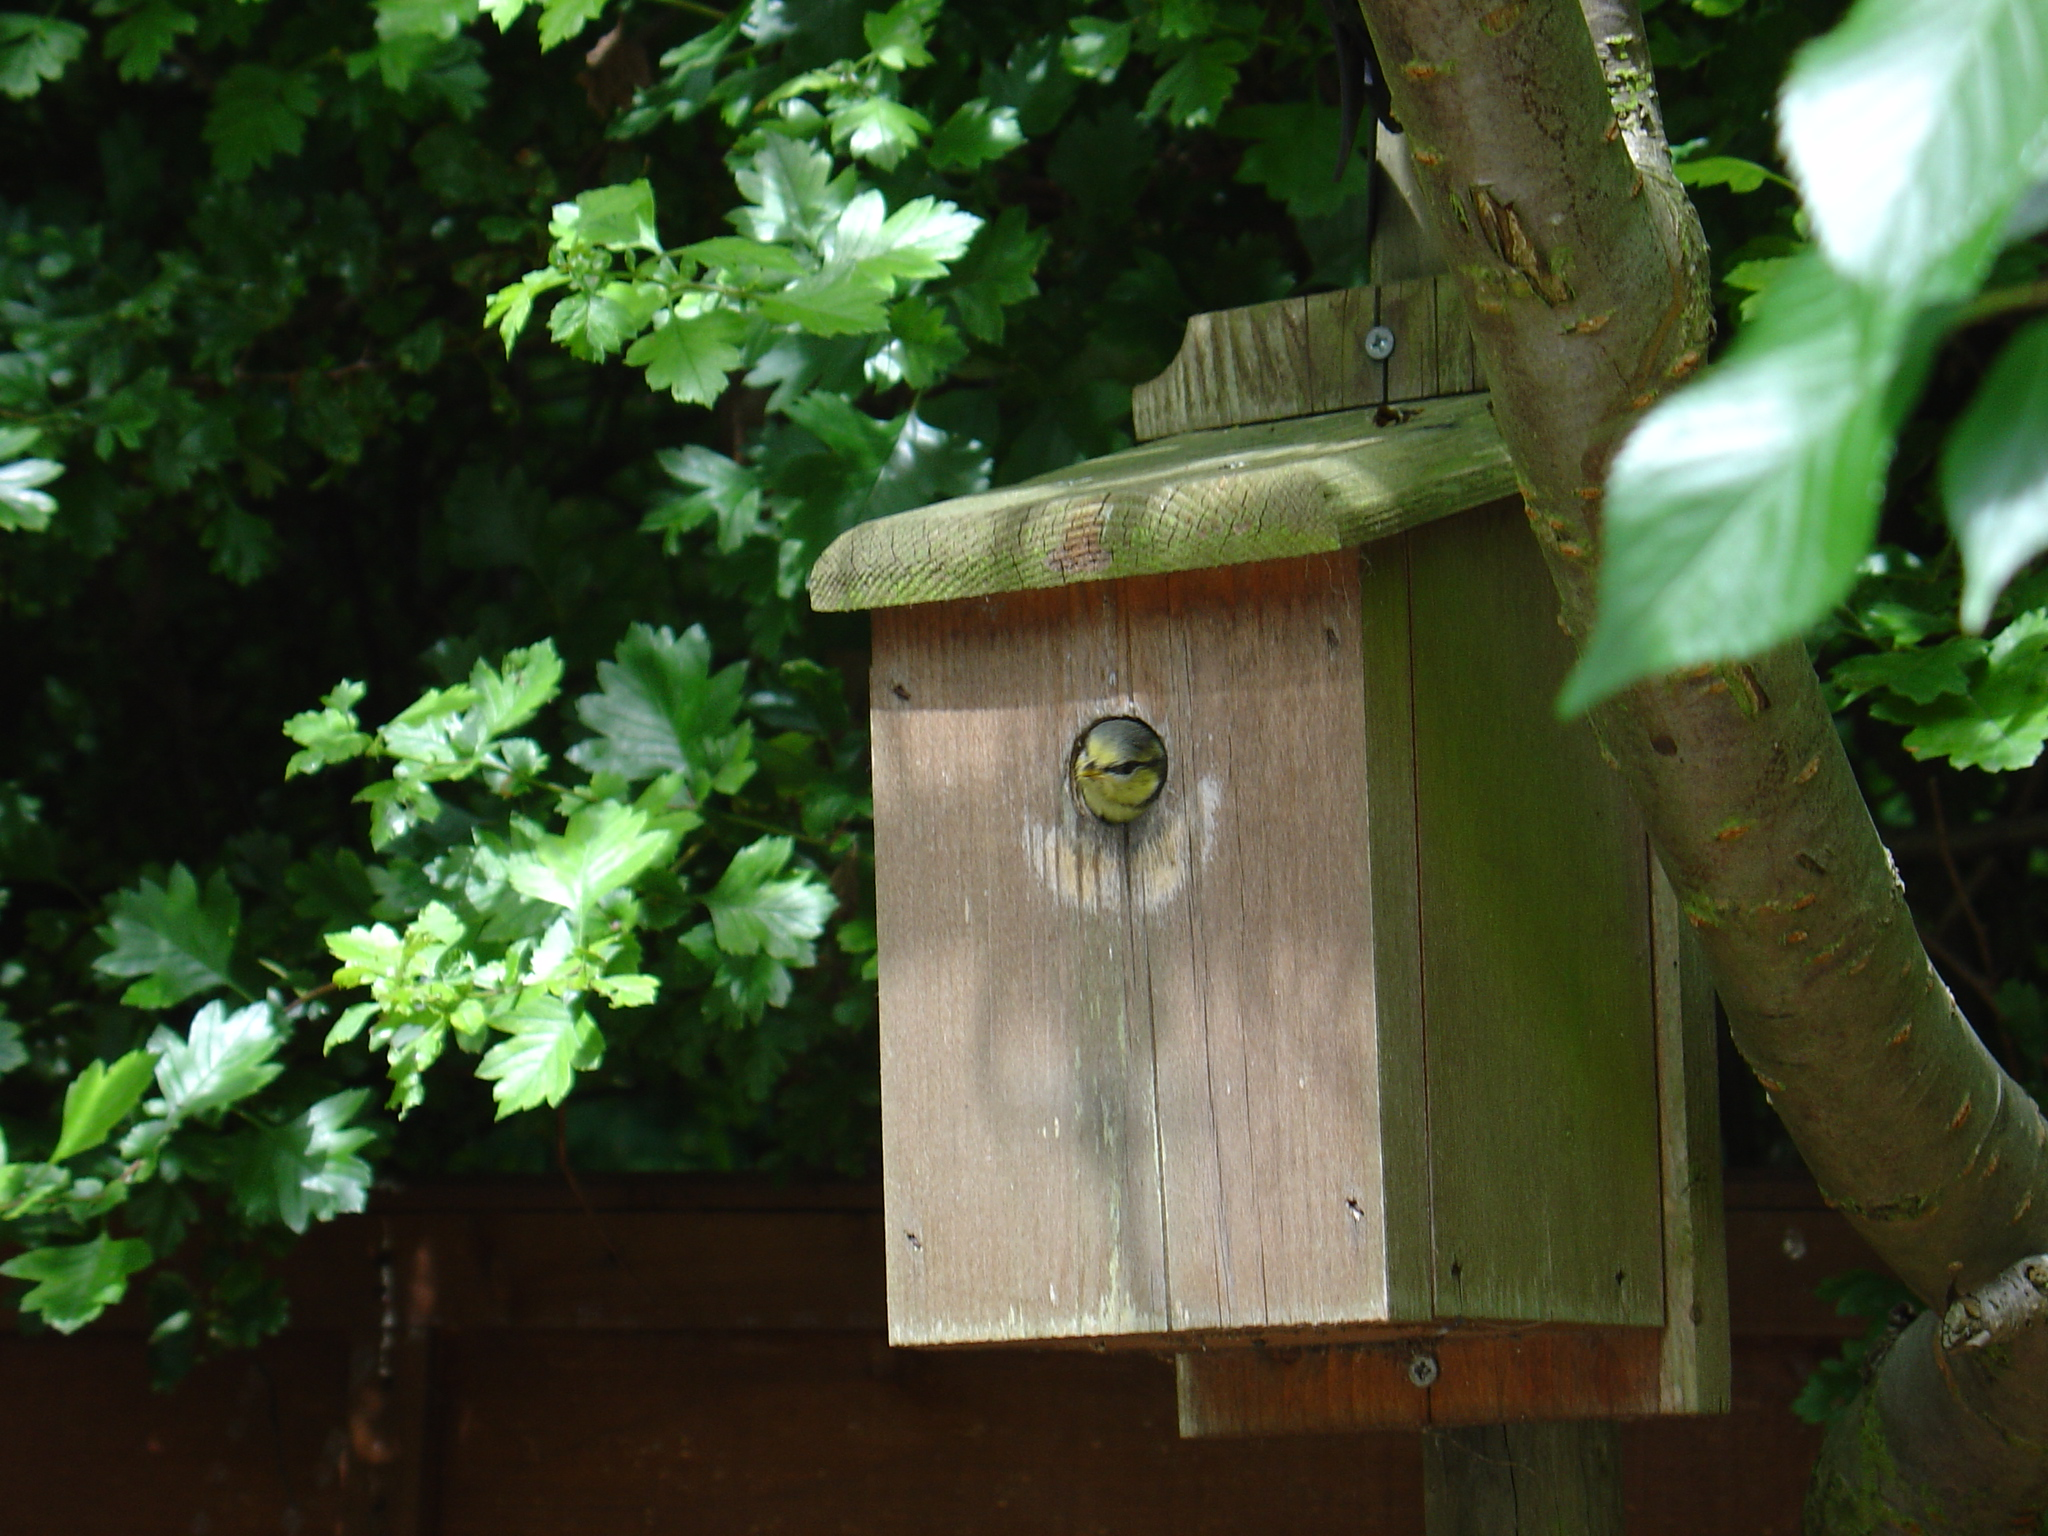 Young Bluetit peeping out of a nestbox